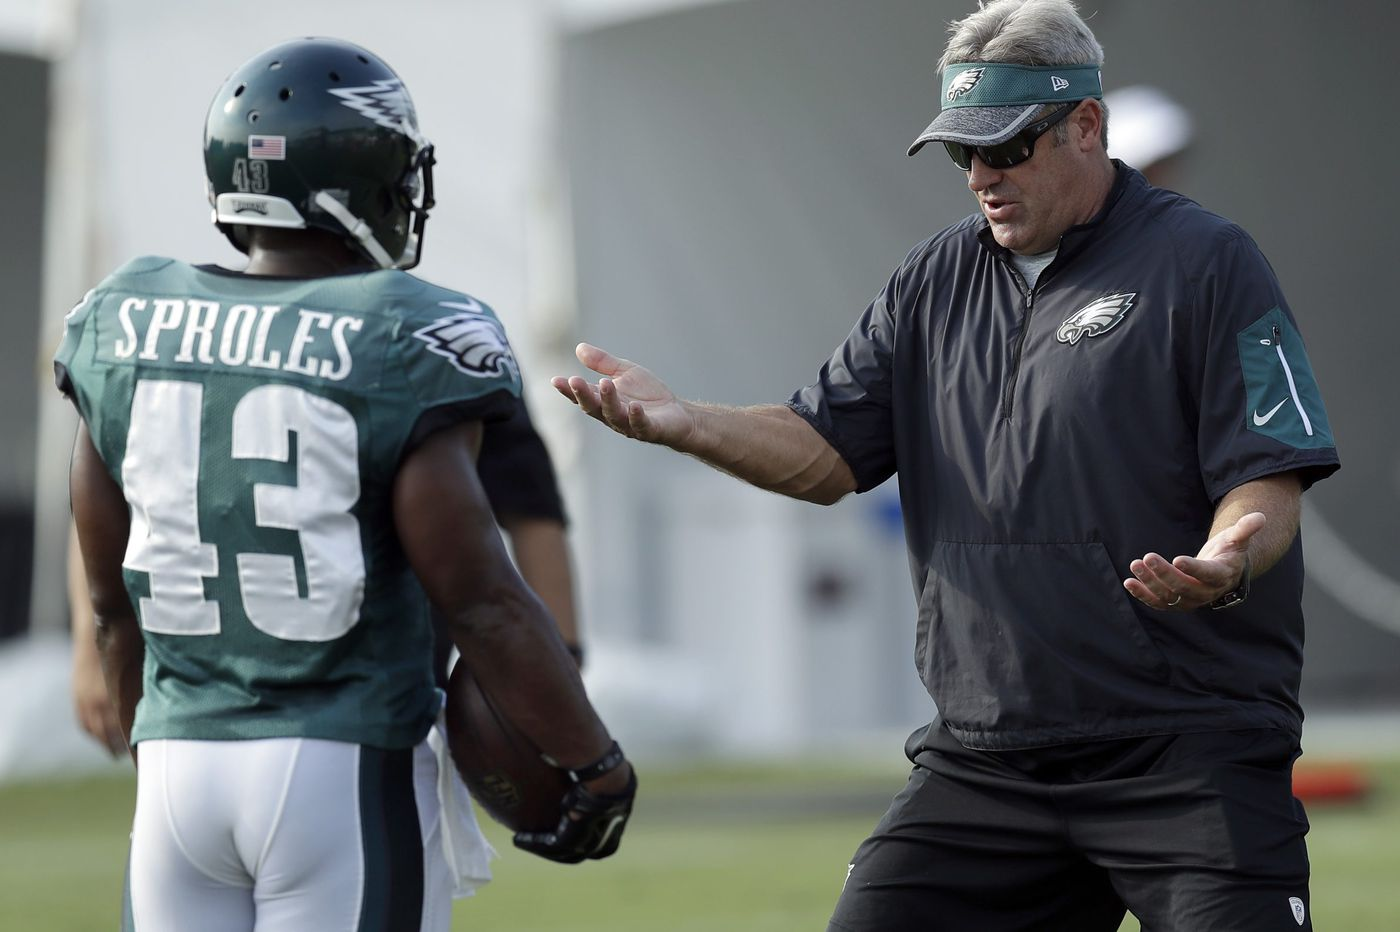 Doug Pederson says he thinks Eagles' Darren Sproles will play again this season